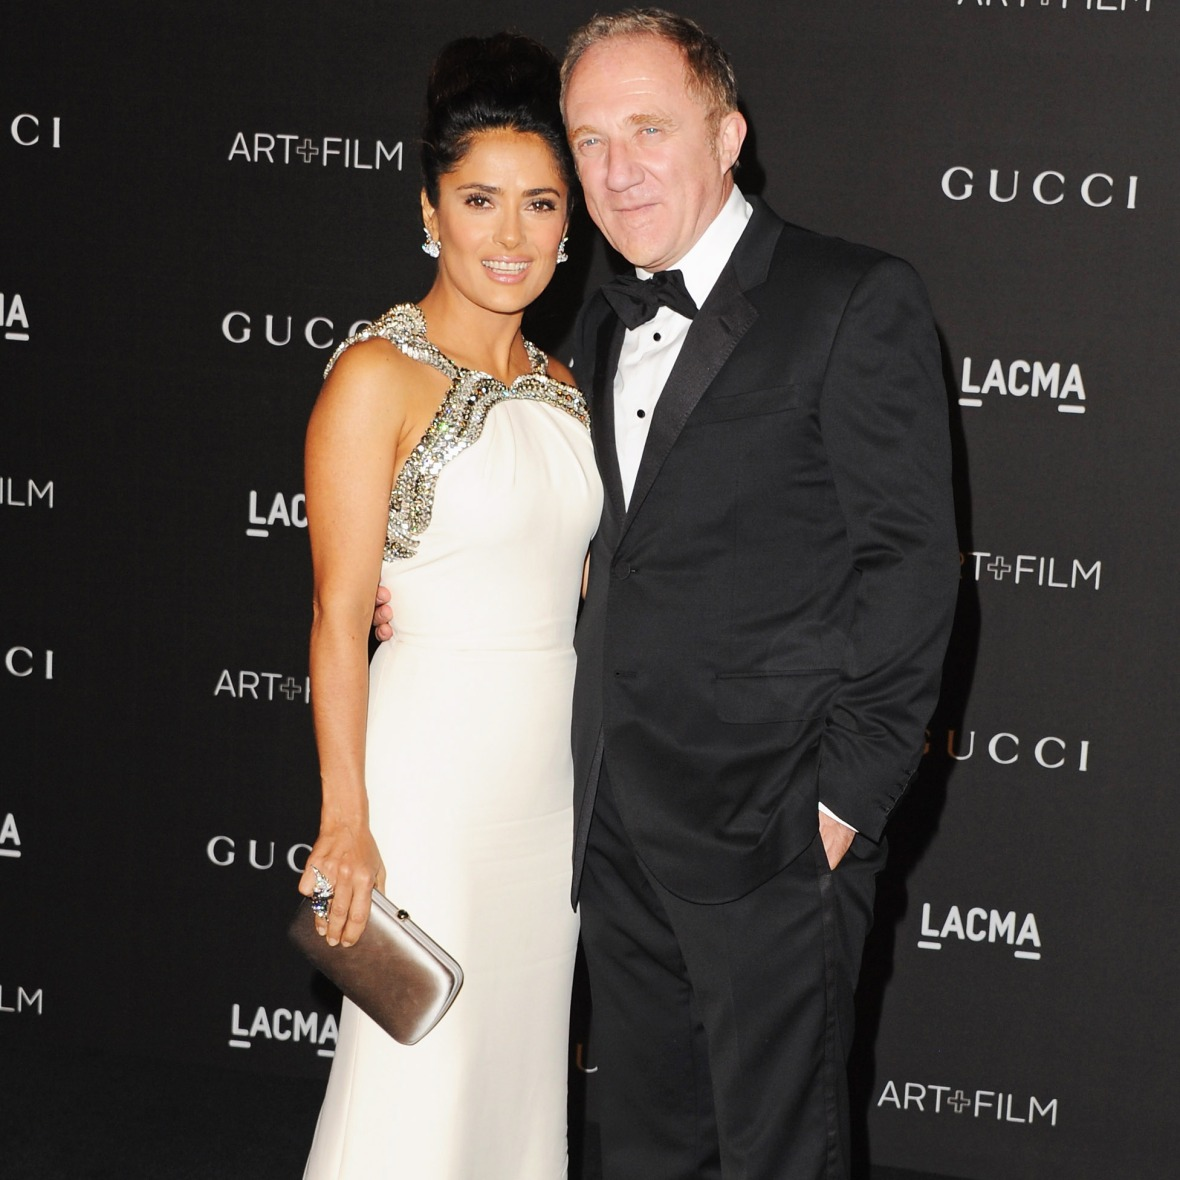 salma hayek husband getty images